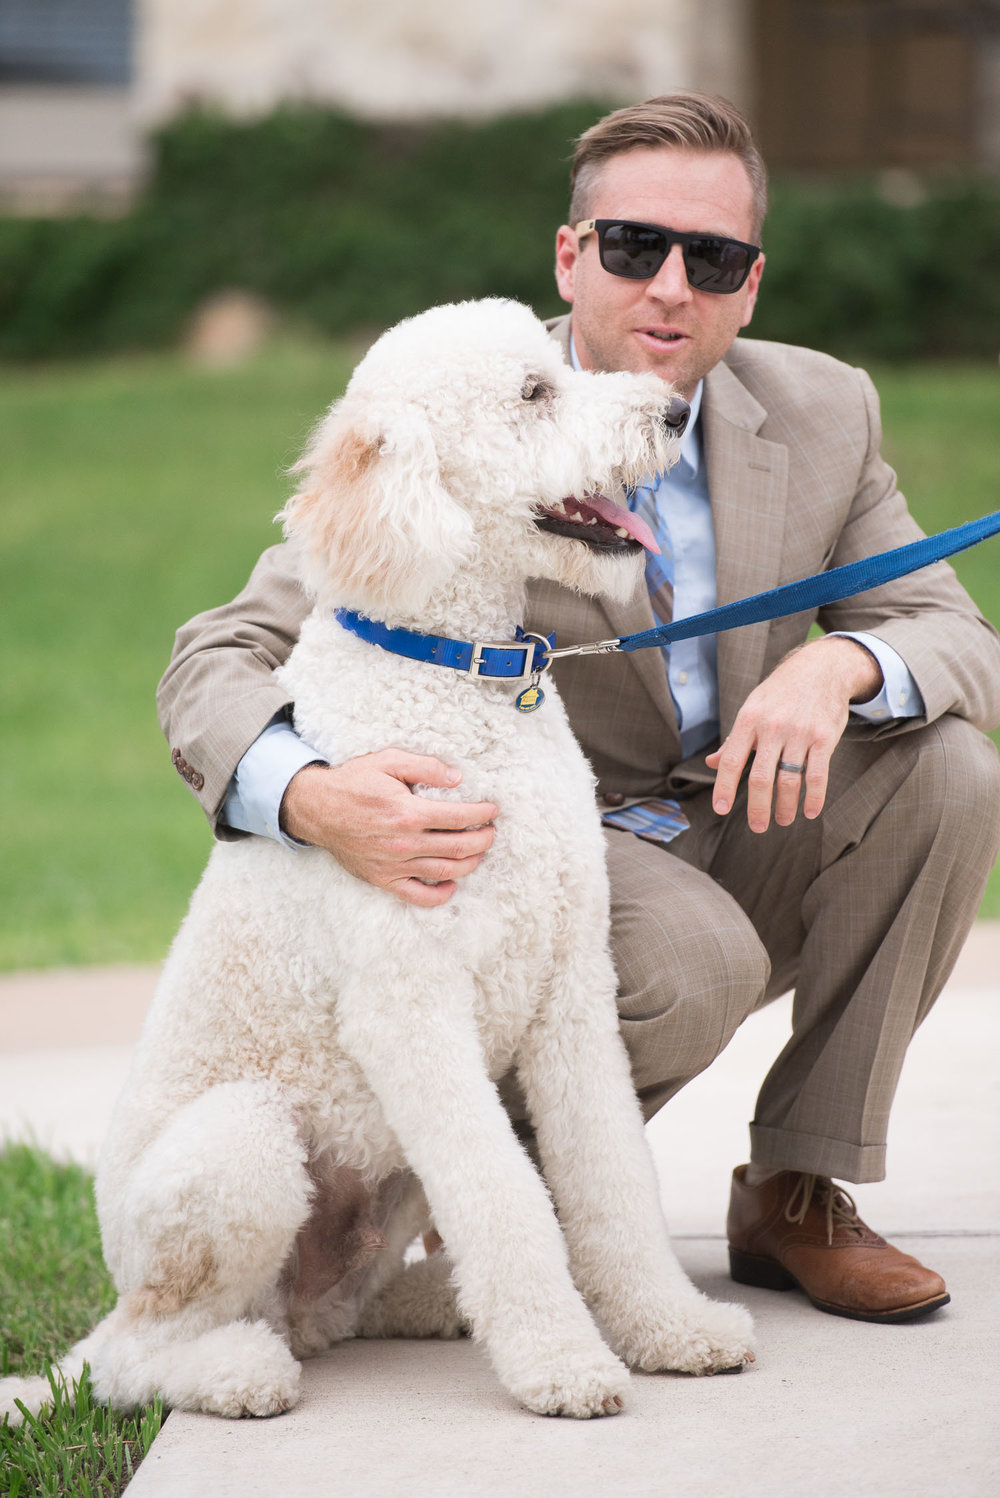 53 golden doodle at wedding.jpg